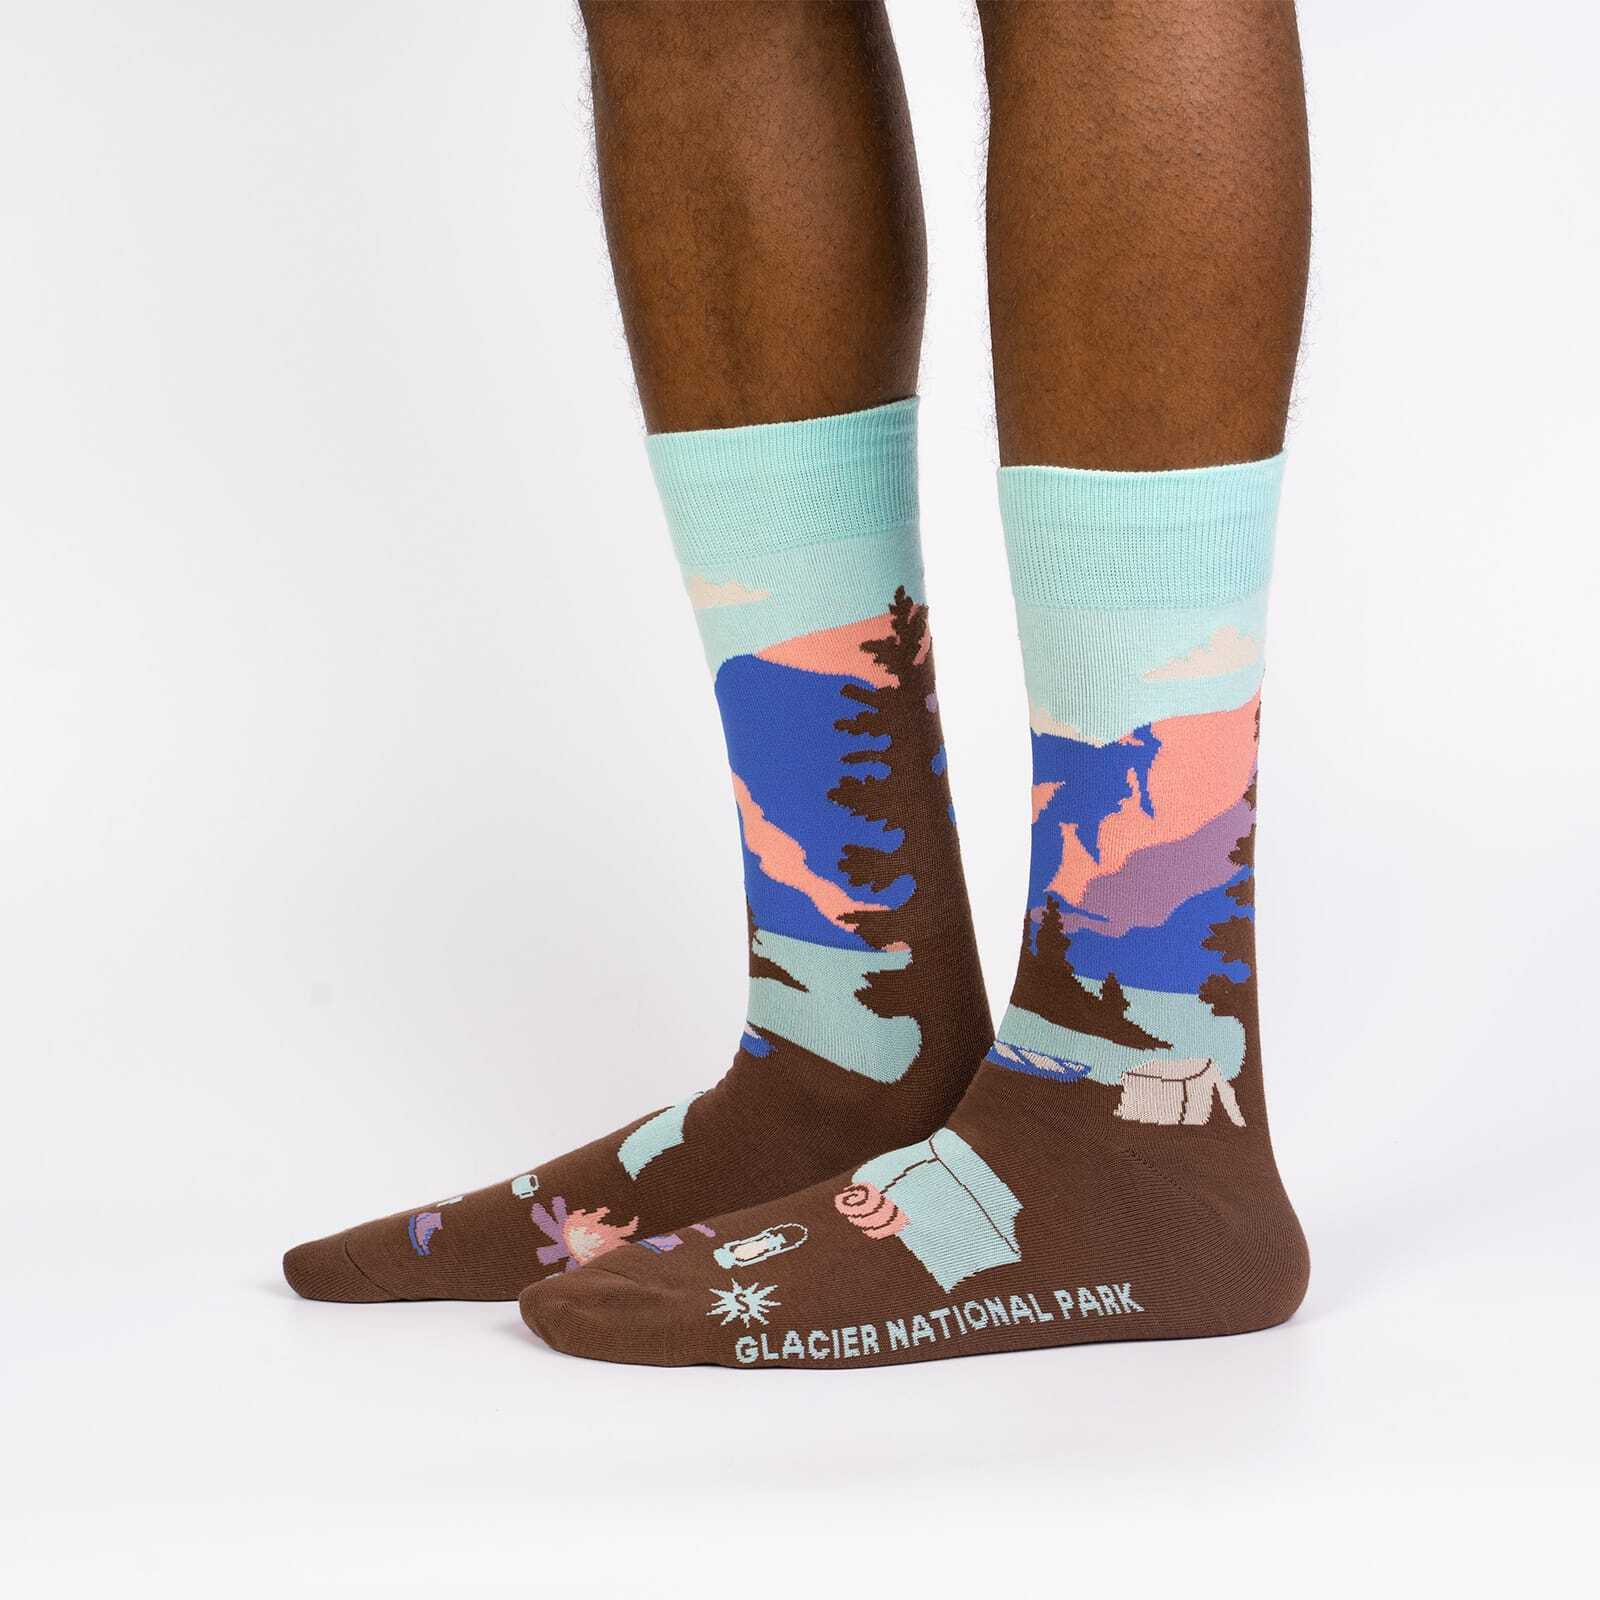 Glacier National Park - Road Trip Travel Crew Socks Brown - Men's in Brown